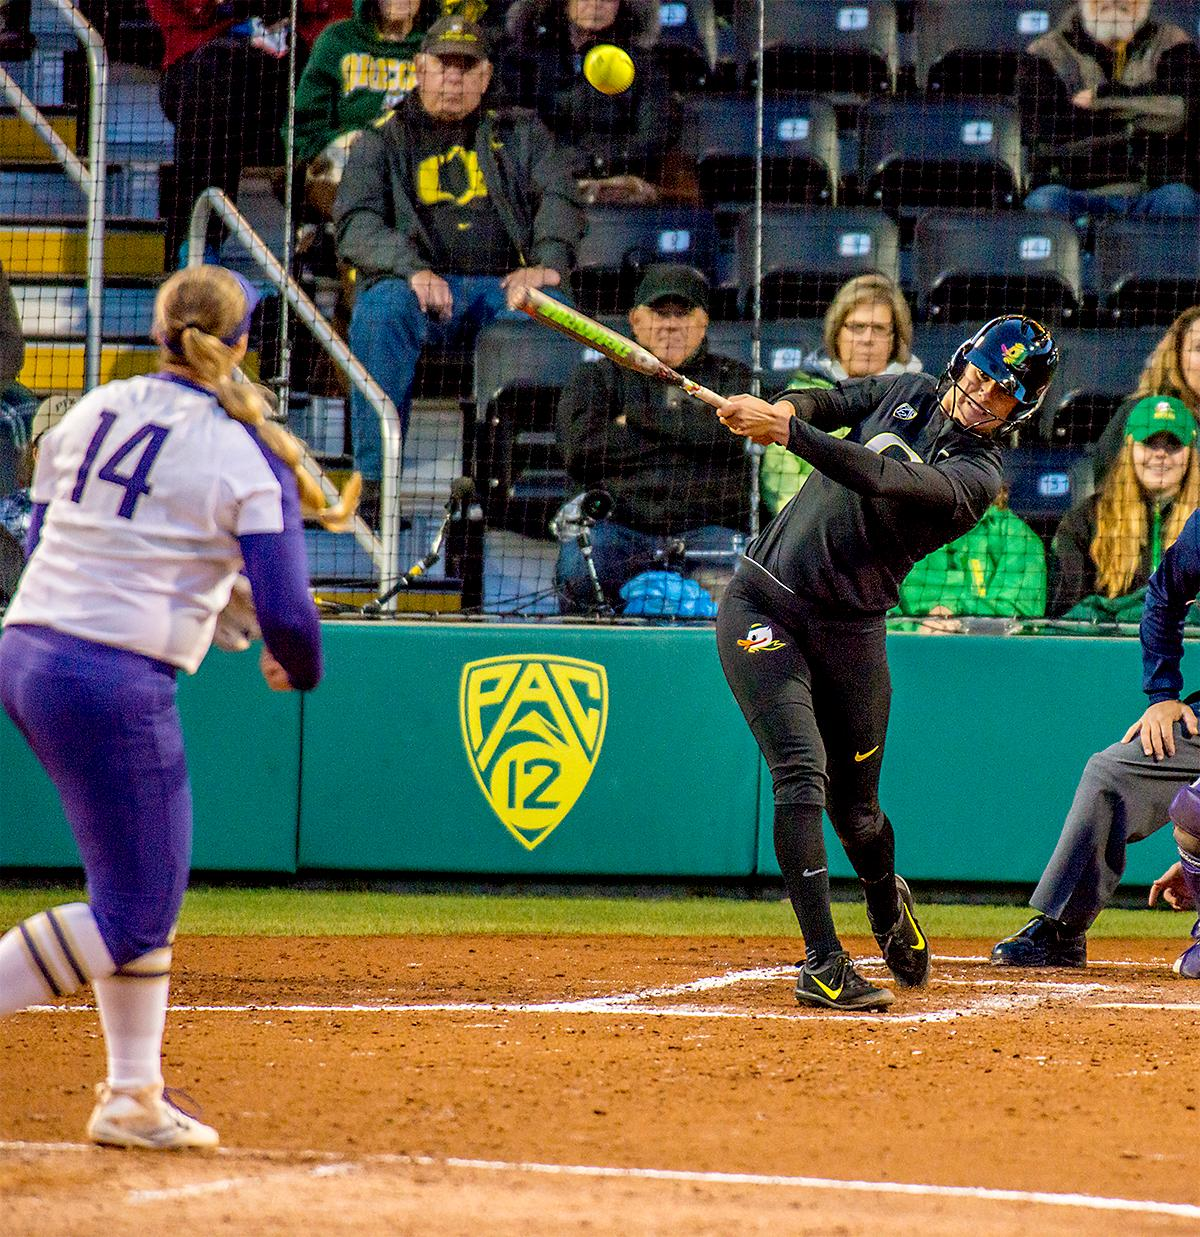 The Duck's Lauren Lindvall (#8) hits the ball high. In Game Two of a three-game series, the University of Oregon Ducks softball team defeated the University of Washington Huskies 4-1 Friday night in Jane Sanders Stadium. Danica Mercado (#2), Alexis Mack (#10) and Mia Camuso (#7) all scored in the win, Mack twice. The Ducks play the Huskies for the tie breaker on Saturday with the first pitch at noon. Photo by August Frank, Oregon News Lab